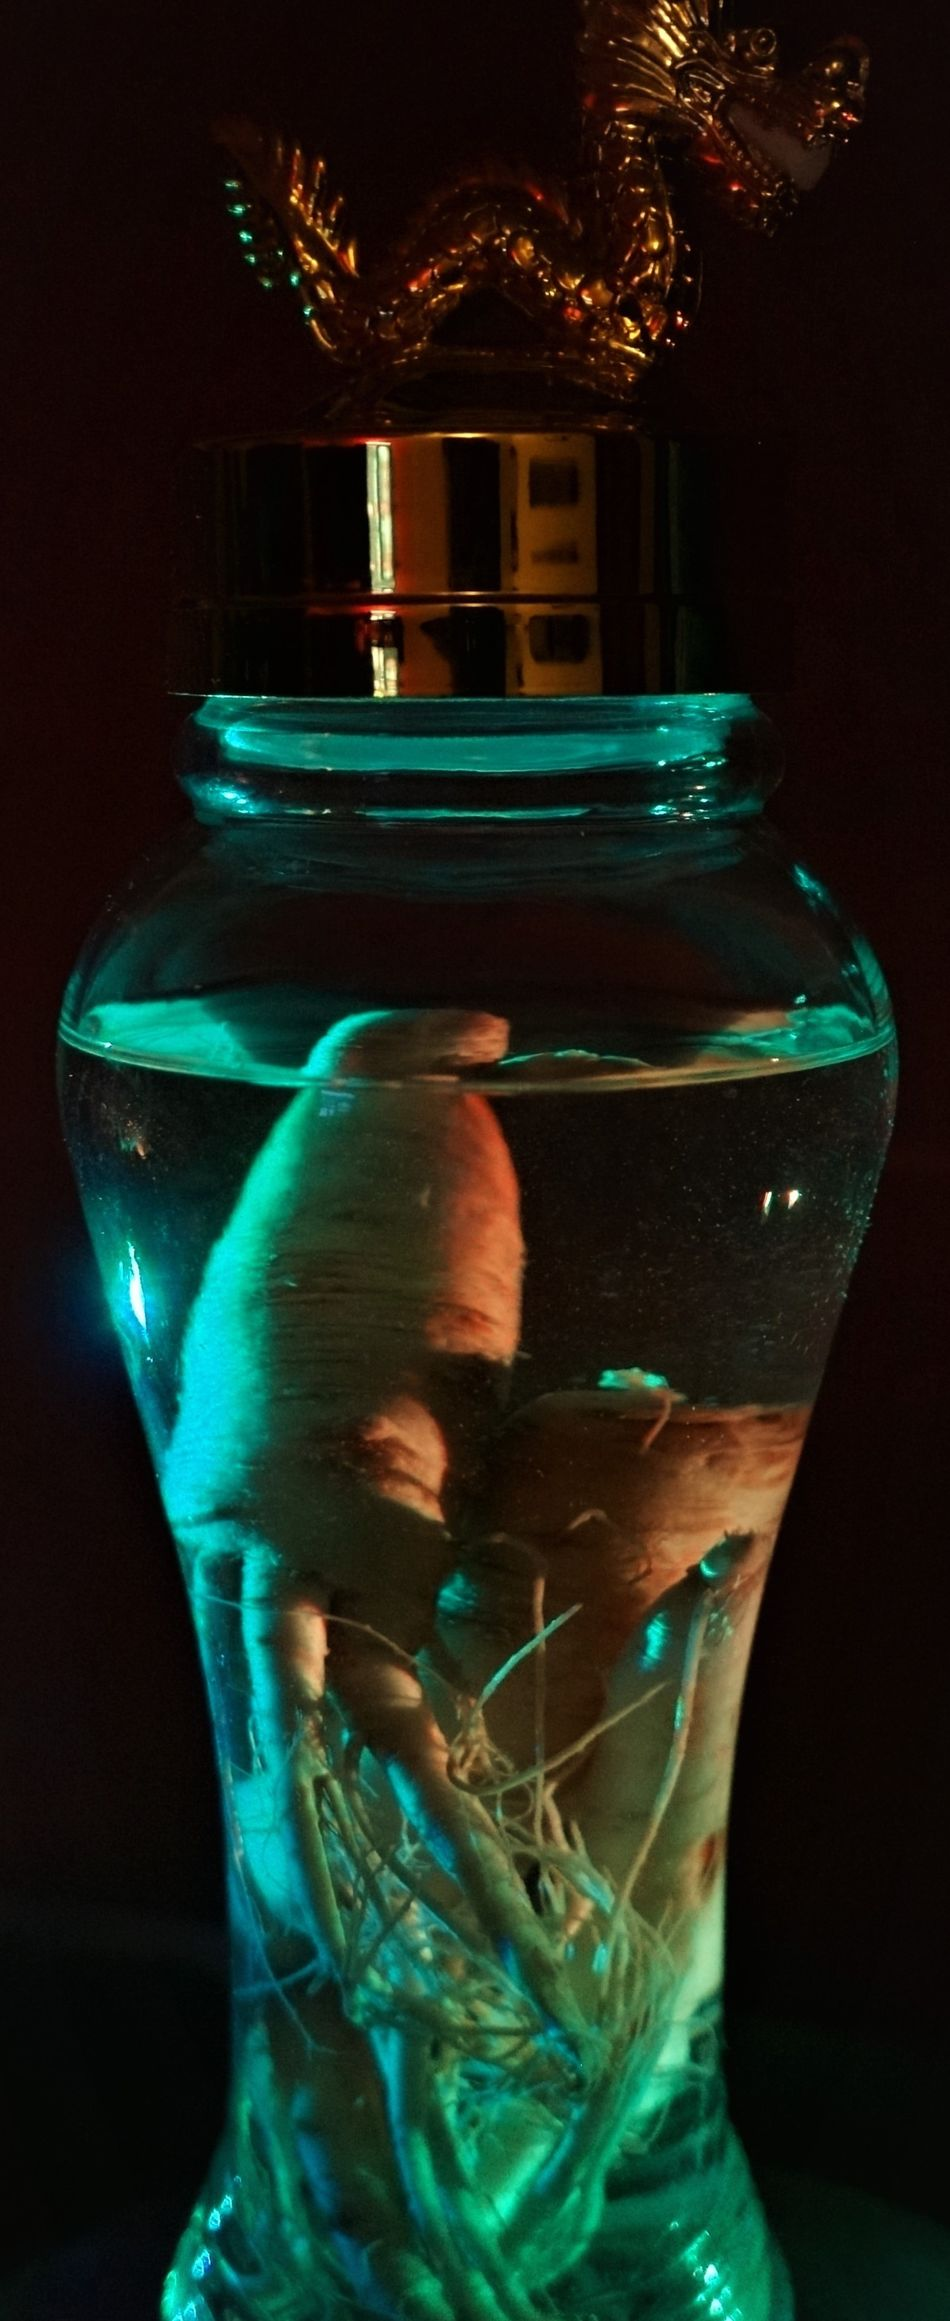 Bw Colors Drinking Glass Experimental Energy Experimental Photography Food And Drink Ginseng Light And Shadow